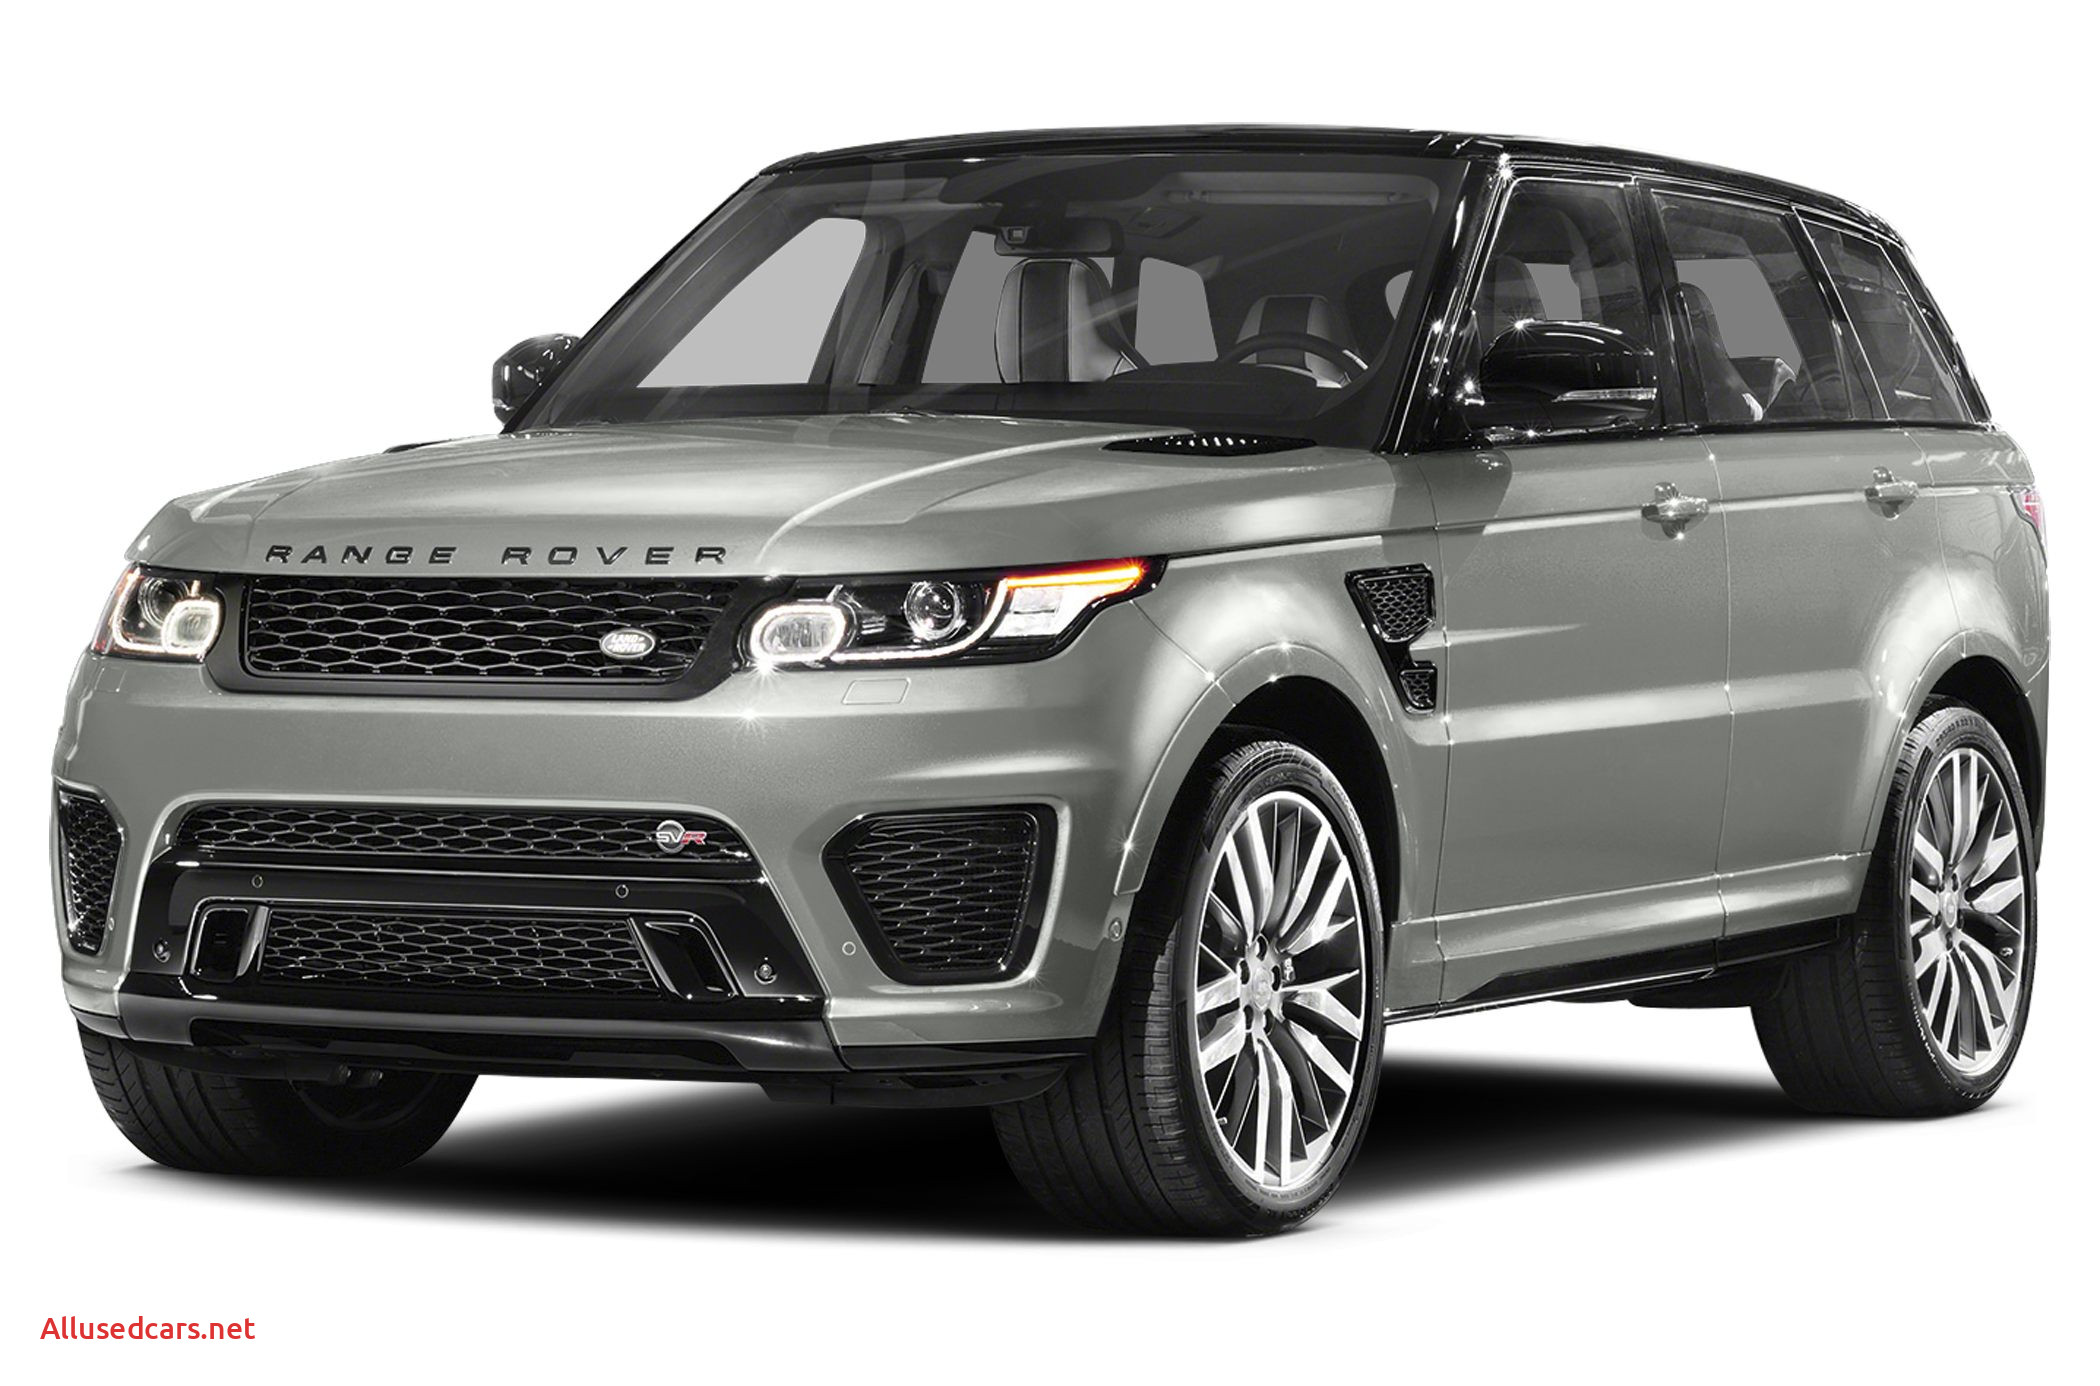 Range Rover Svr for Sale Fresh 2015 Land Rover Range Rover Sport 5 0l Supercharged Svr 4dr 4x4 Specs and Prices